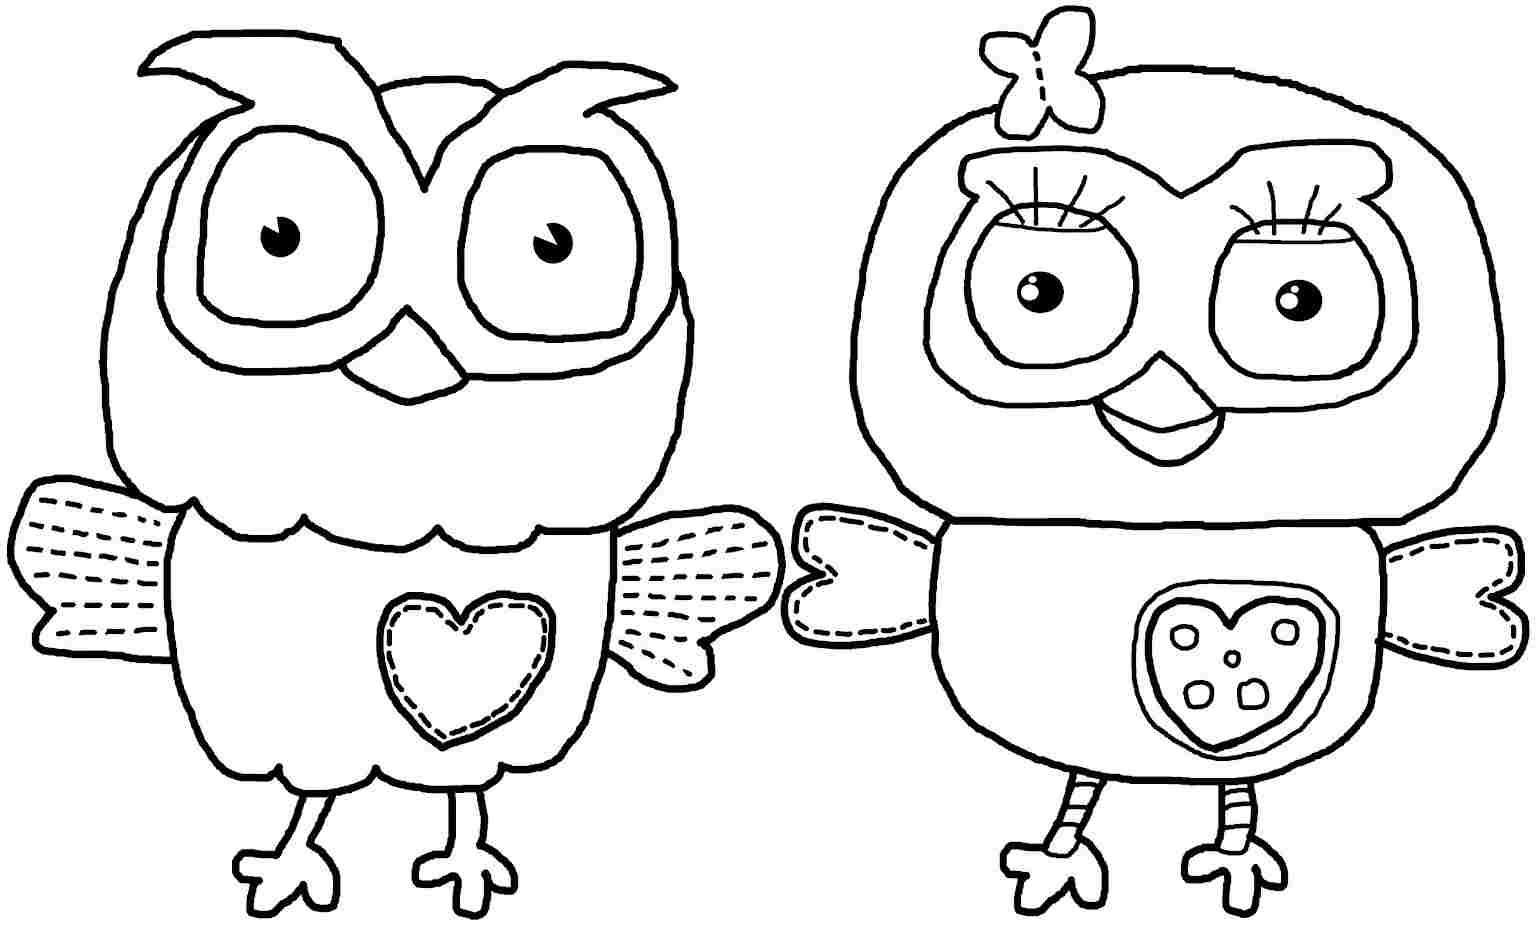 Owl Coloring Pages Printable Free Only Coloring Pages Childrens Printable Coloring Pages